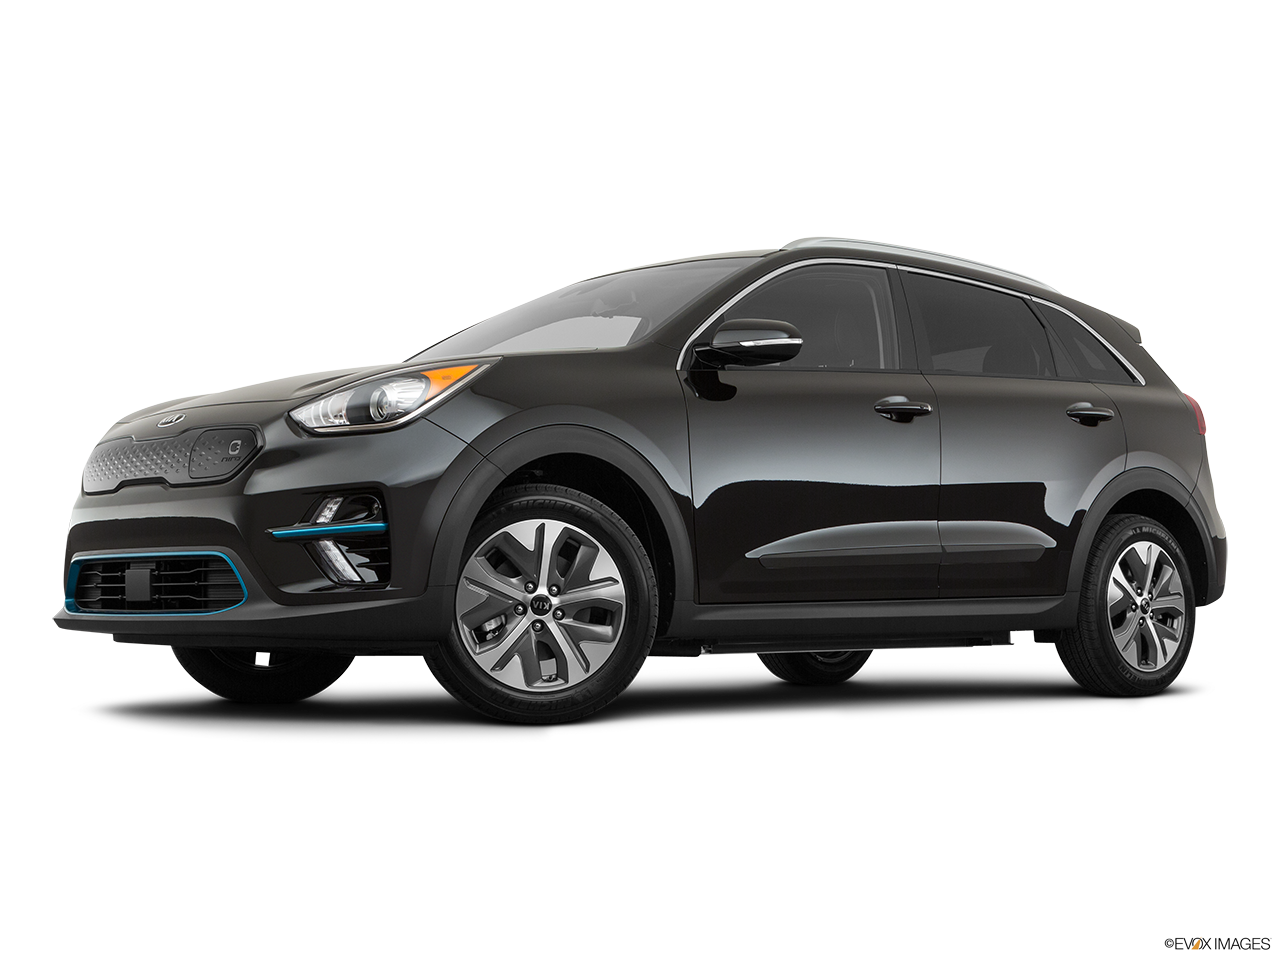 2019 Kia Niro EV photo